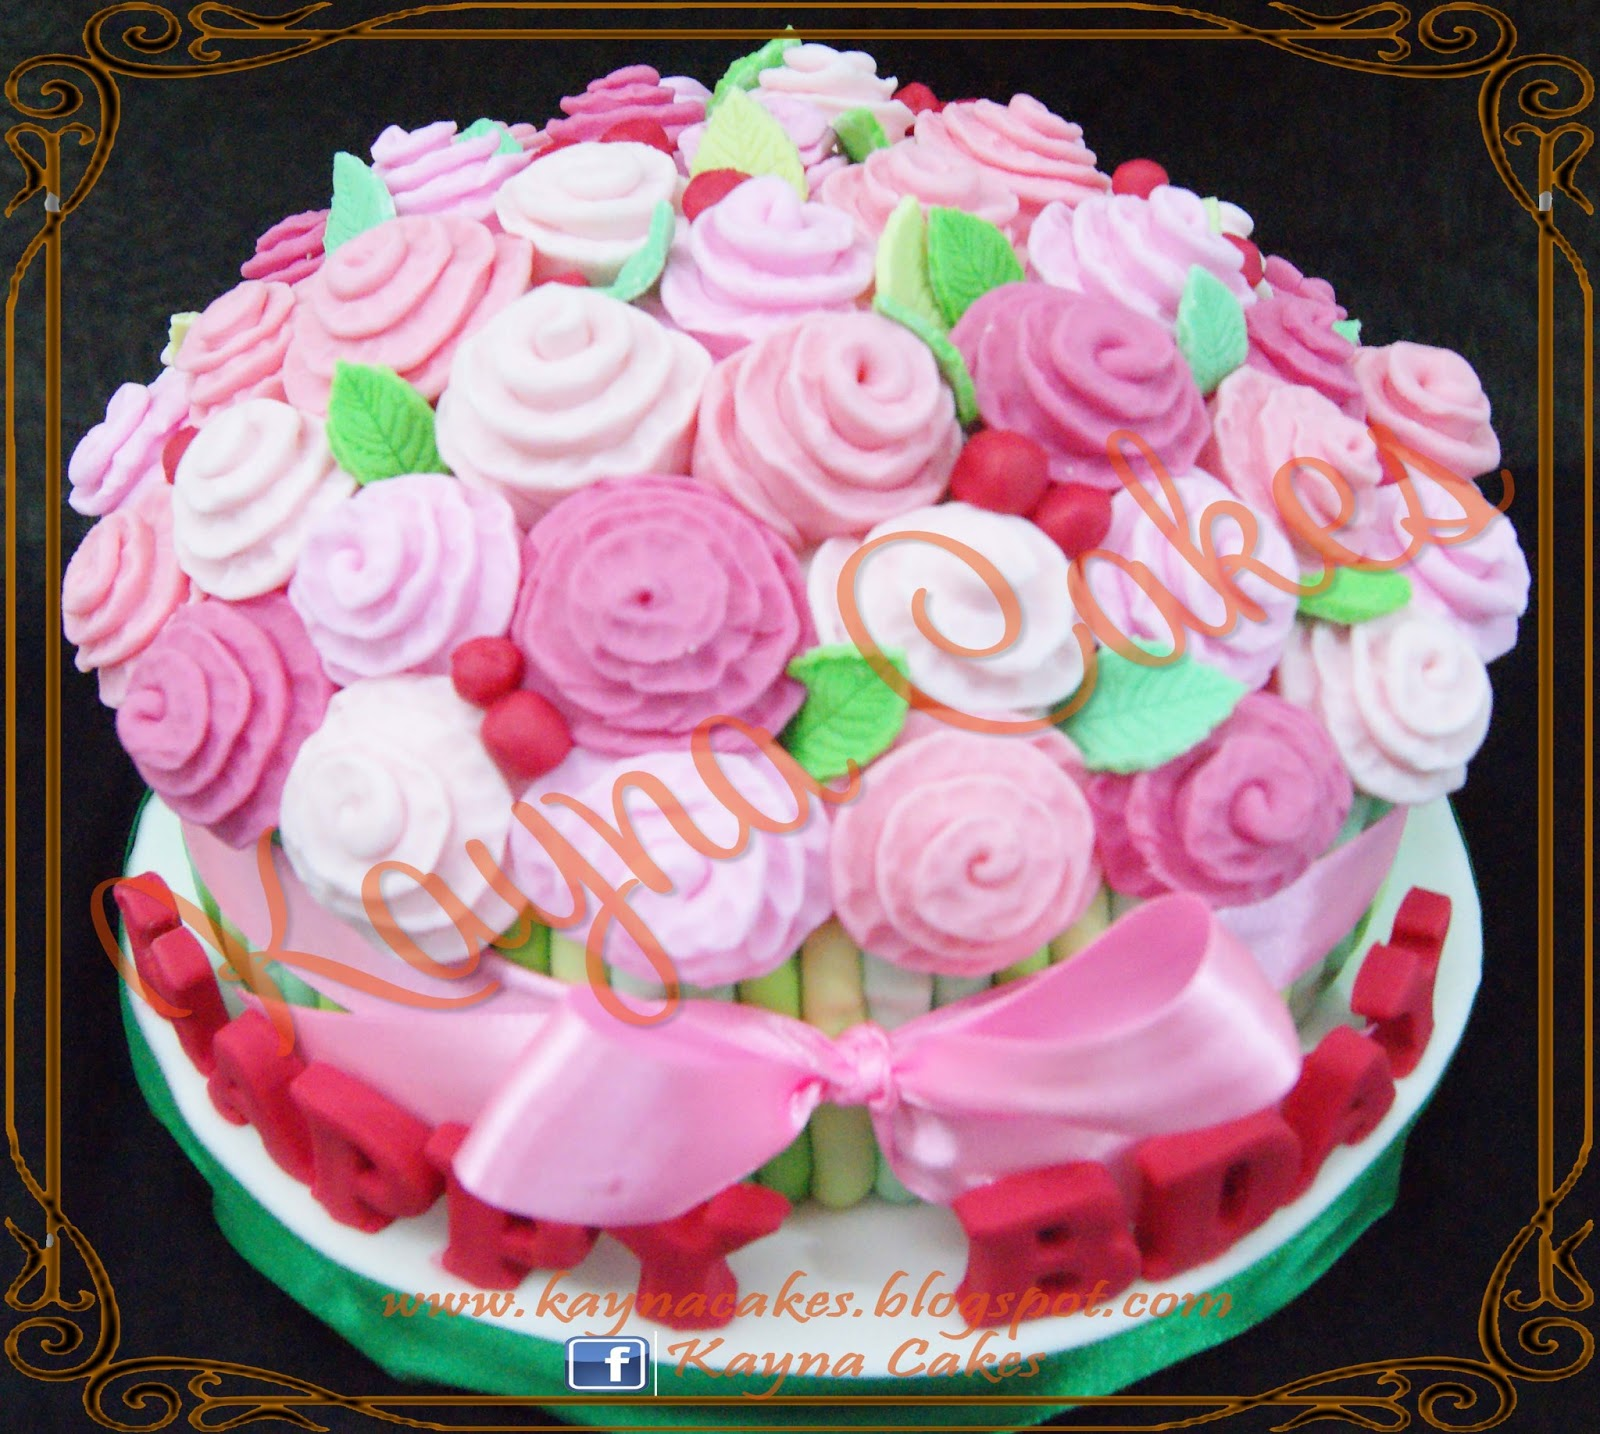 Kayna cakes and cupcakes mommies bouquet of roses cake izmirmasajfo